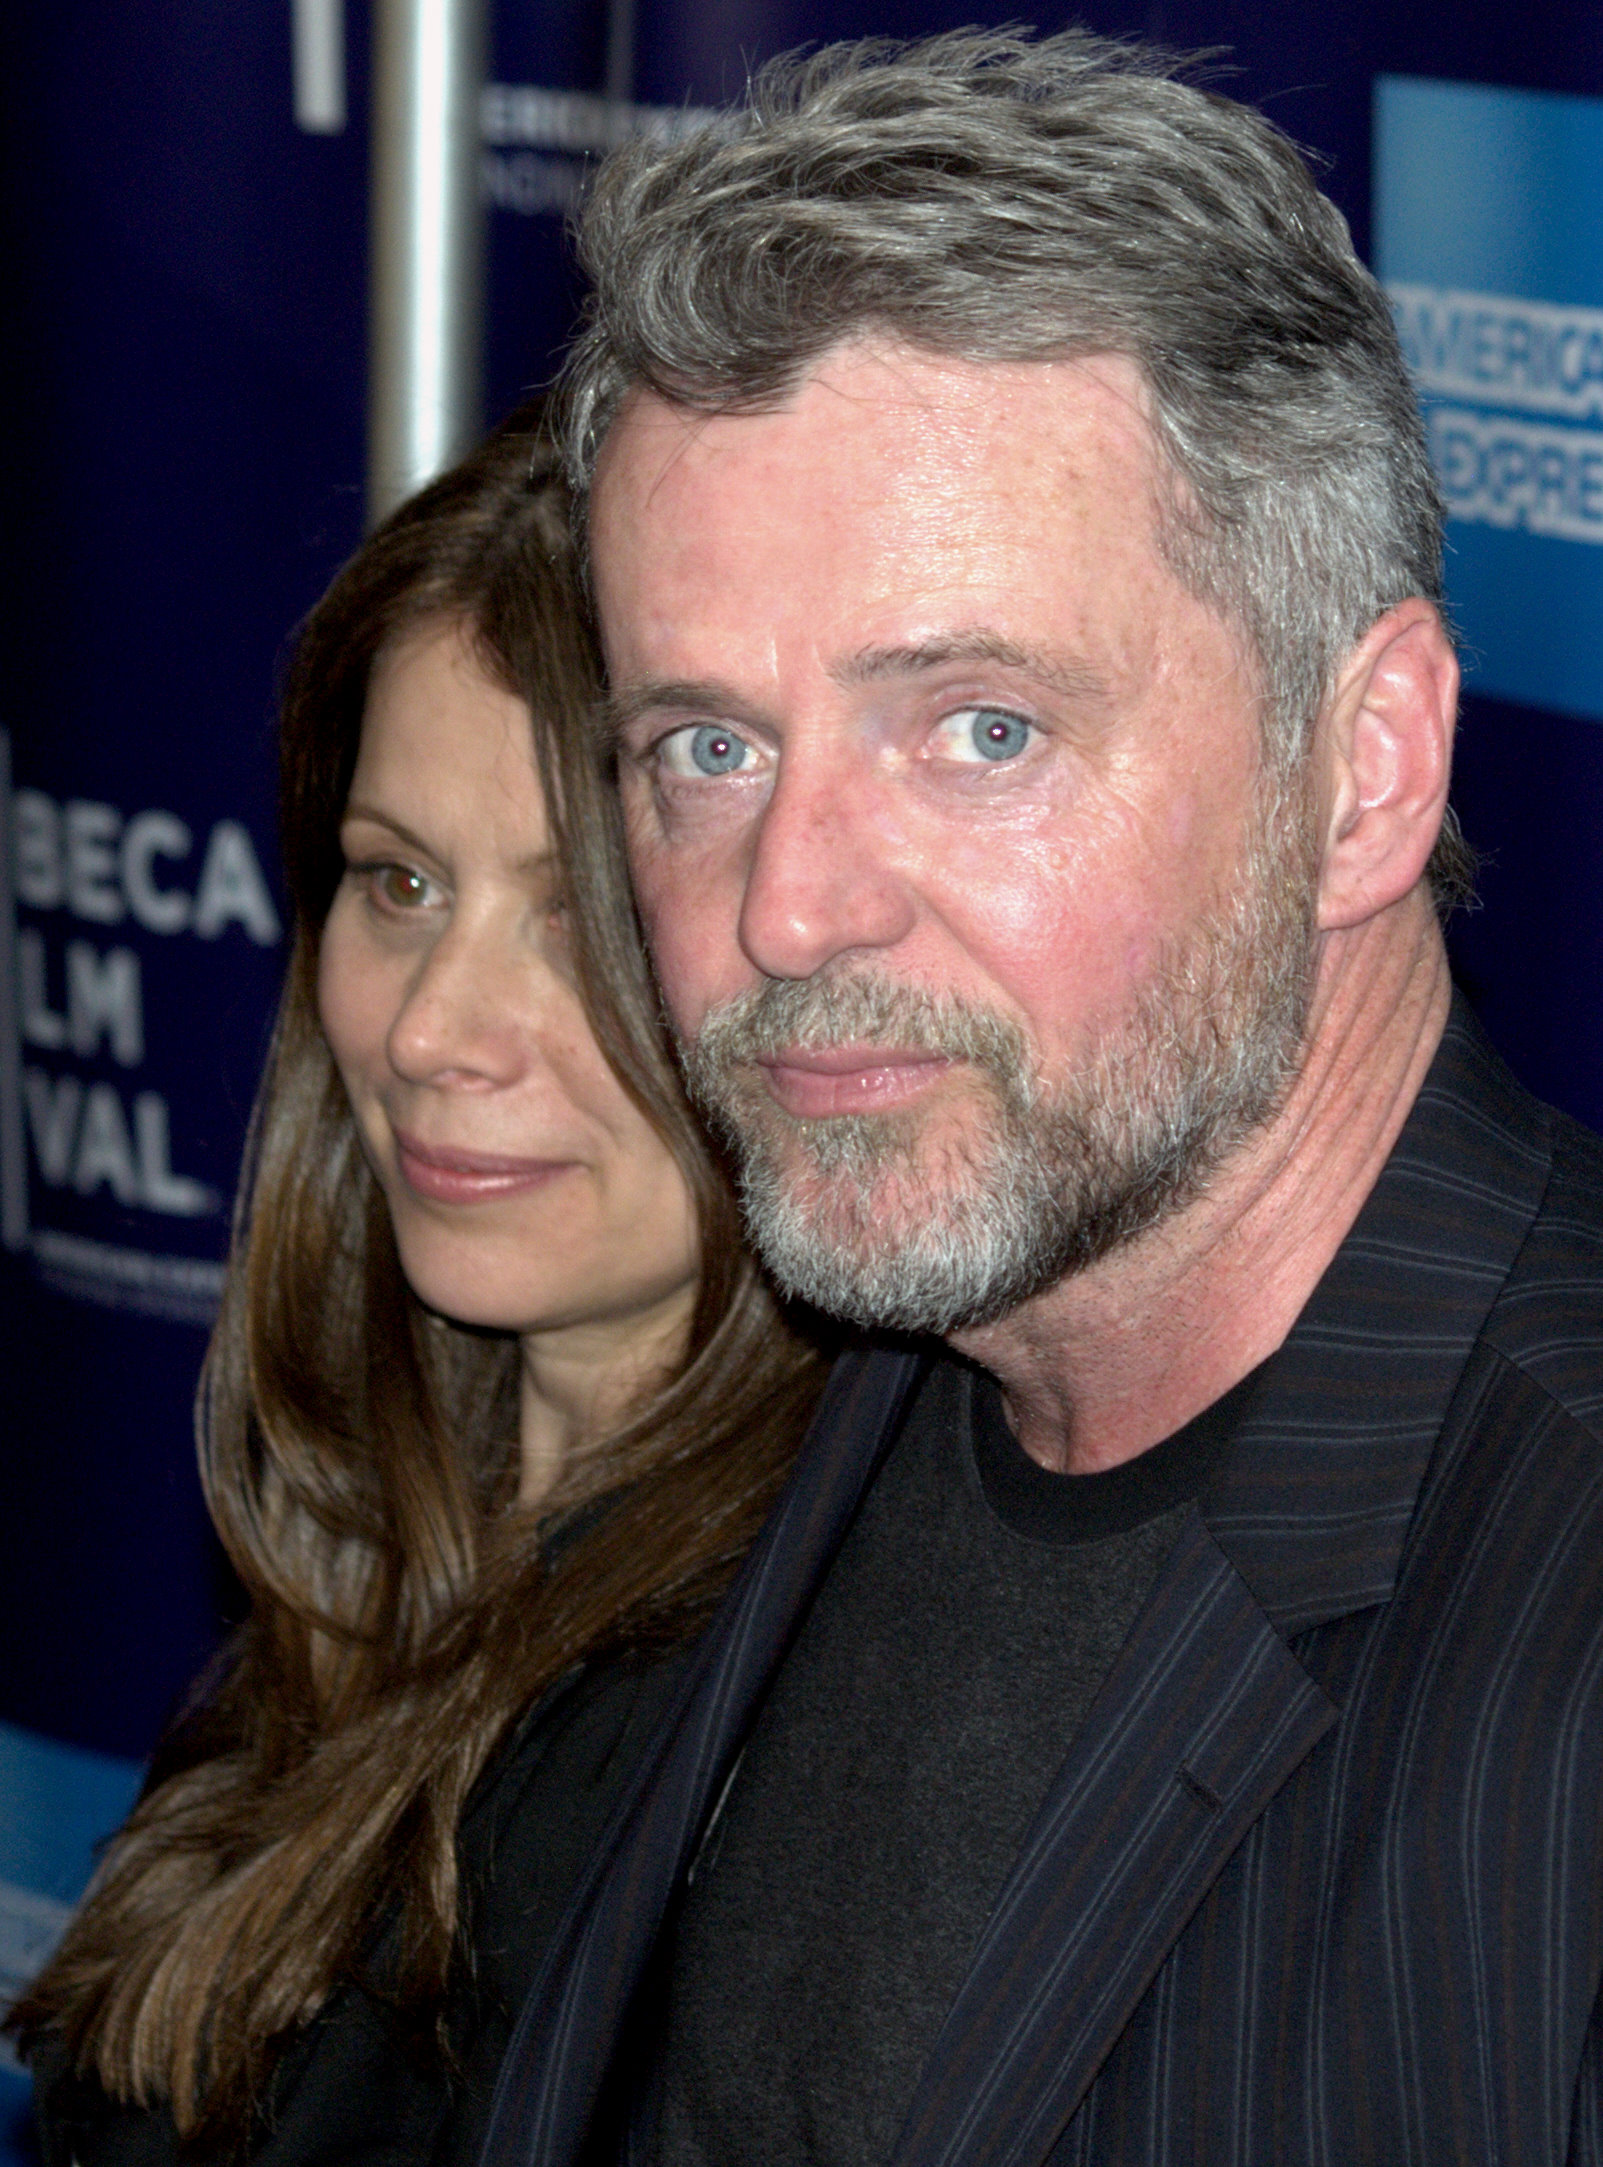 aidan quinn actoraidan quinn 2016, aidan quinn wiki, aidan quinn height, aidan quinn instagram, aidan quinn, aidan quinn movies, aidan quinn imdb, aidan quinn wife, aidan quinn family, aidan quinn eyes, aidan quinn actor, aidan quinn young, aidan quinn elementary, aidan quinn wikipedia, aidan quinn filmography, aidan quinn biography, aidan quinn facebook, aidan quinn interview, aidan quinn practical magic, aidan quinn filmleri